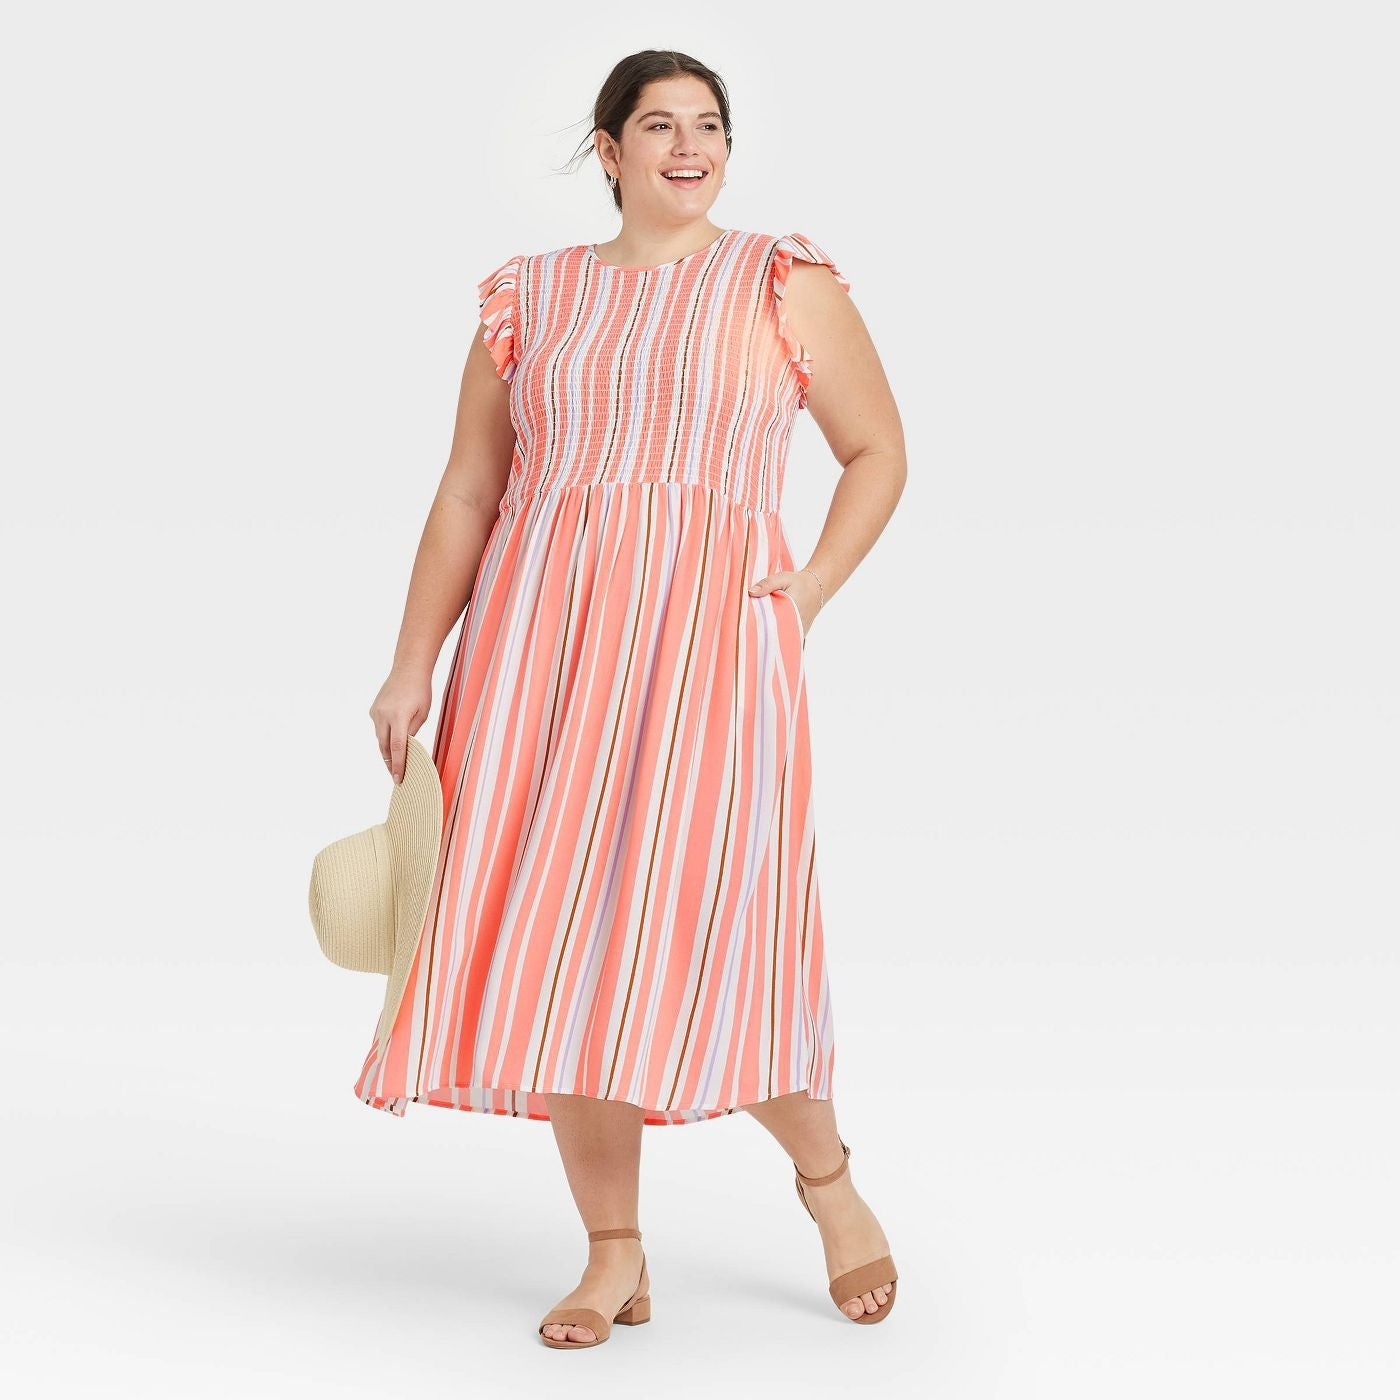 model in the coral, white, brown, and lilac vertical stripe sleeveless dress with ruffle detail